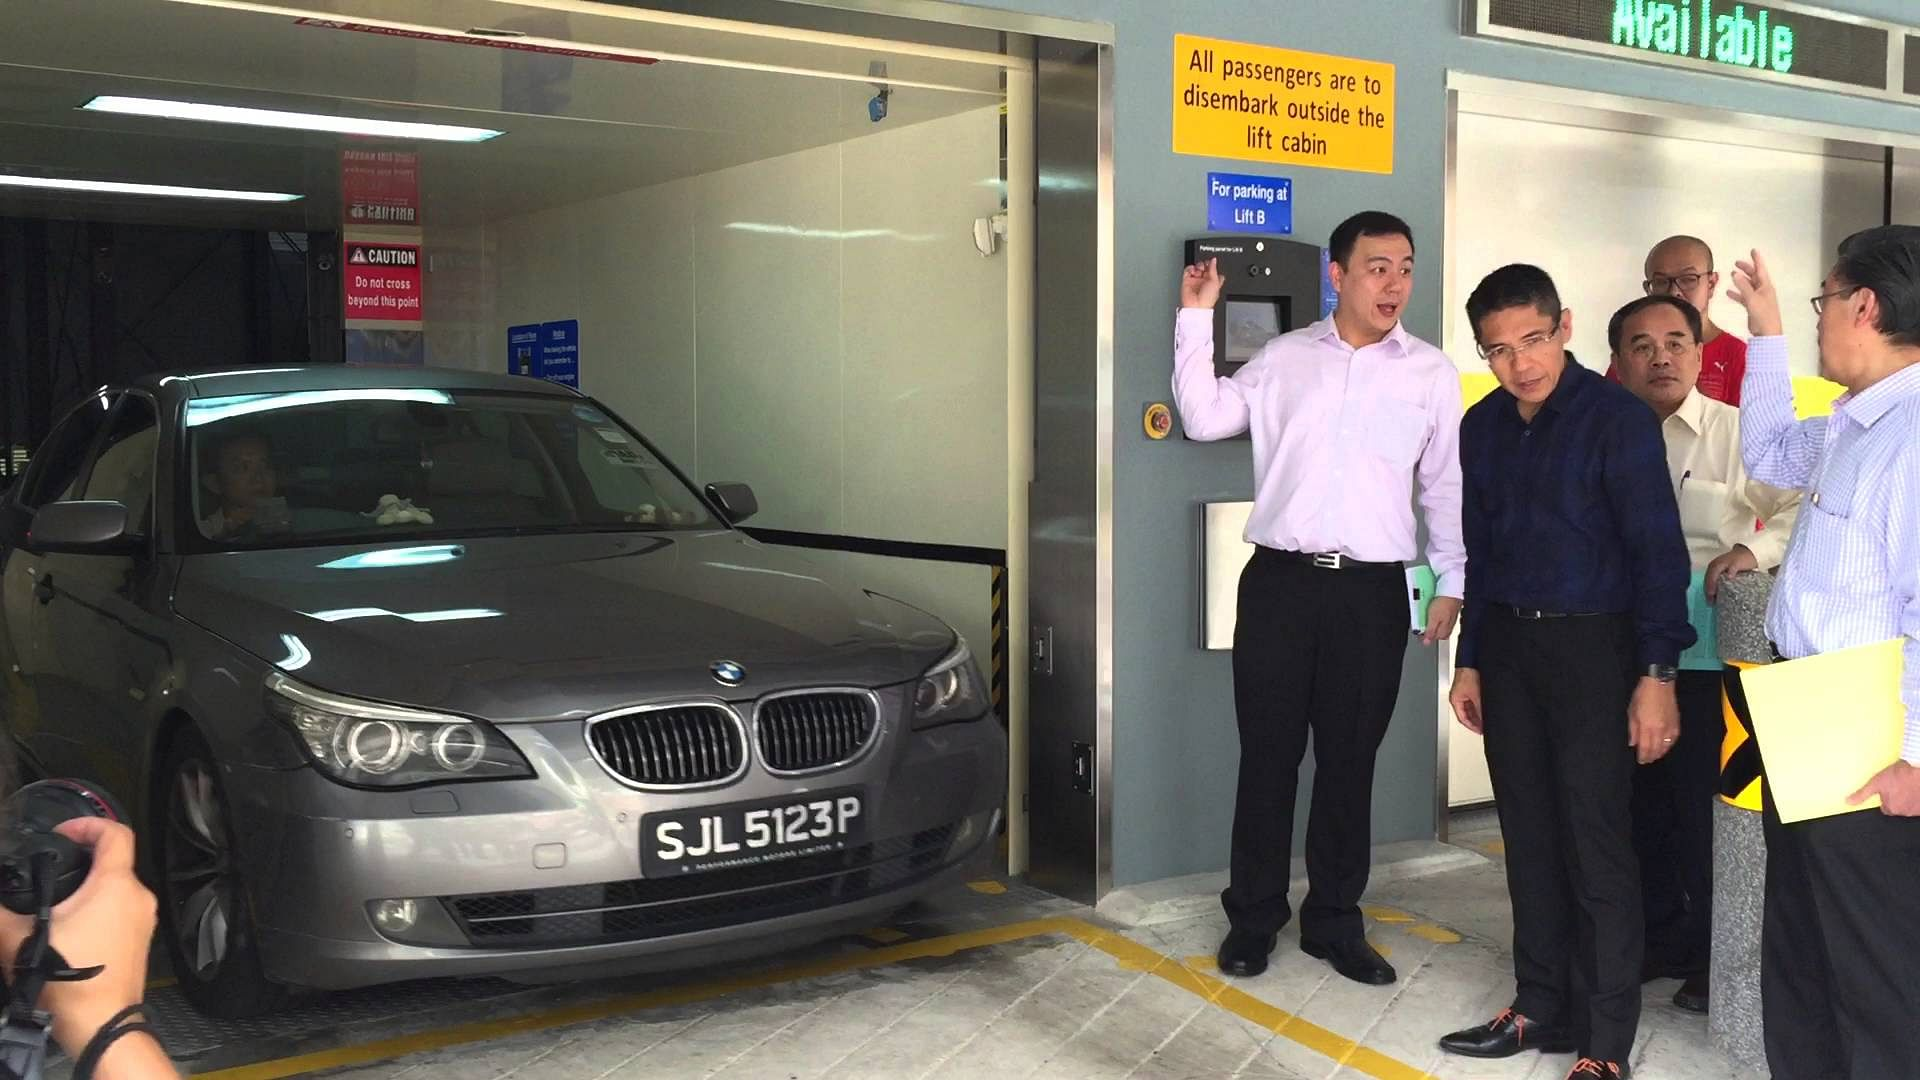 Mechanised Carpark Comes Online At Changi Village But Expect